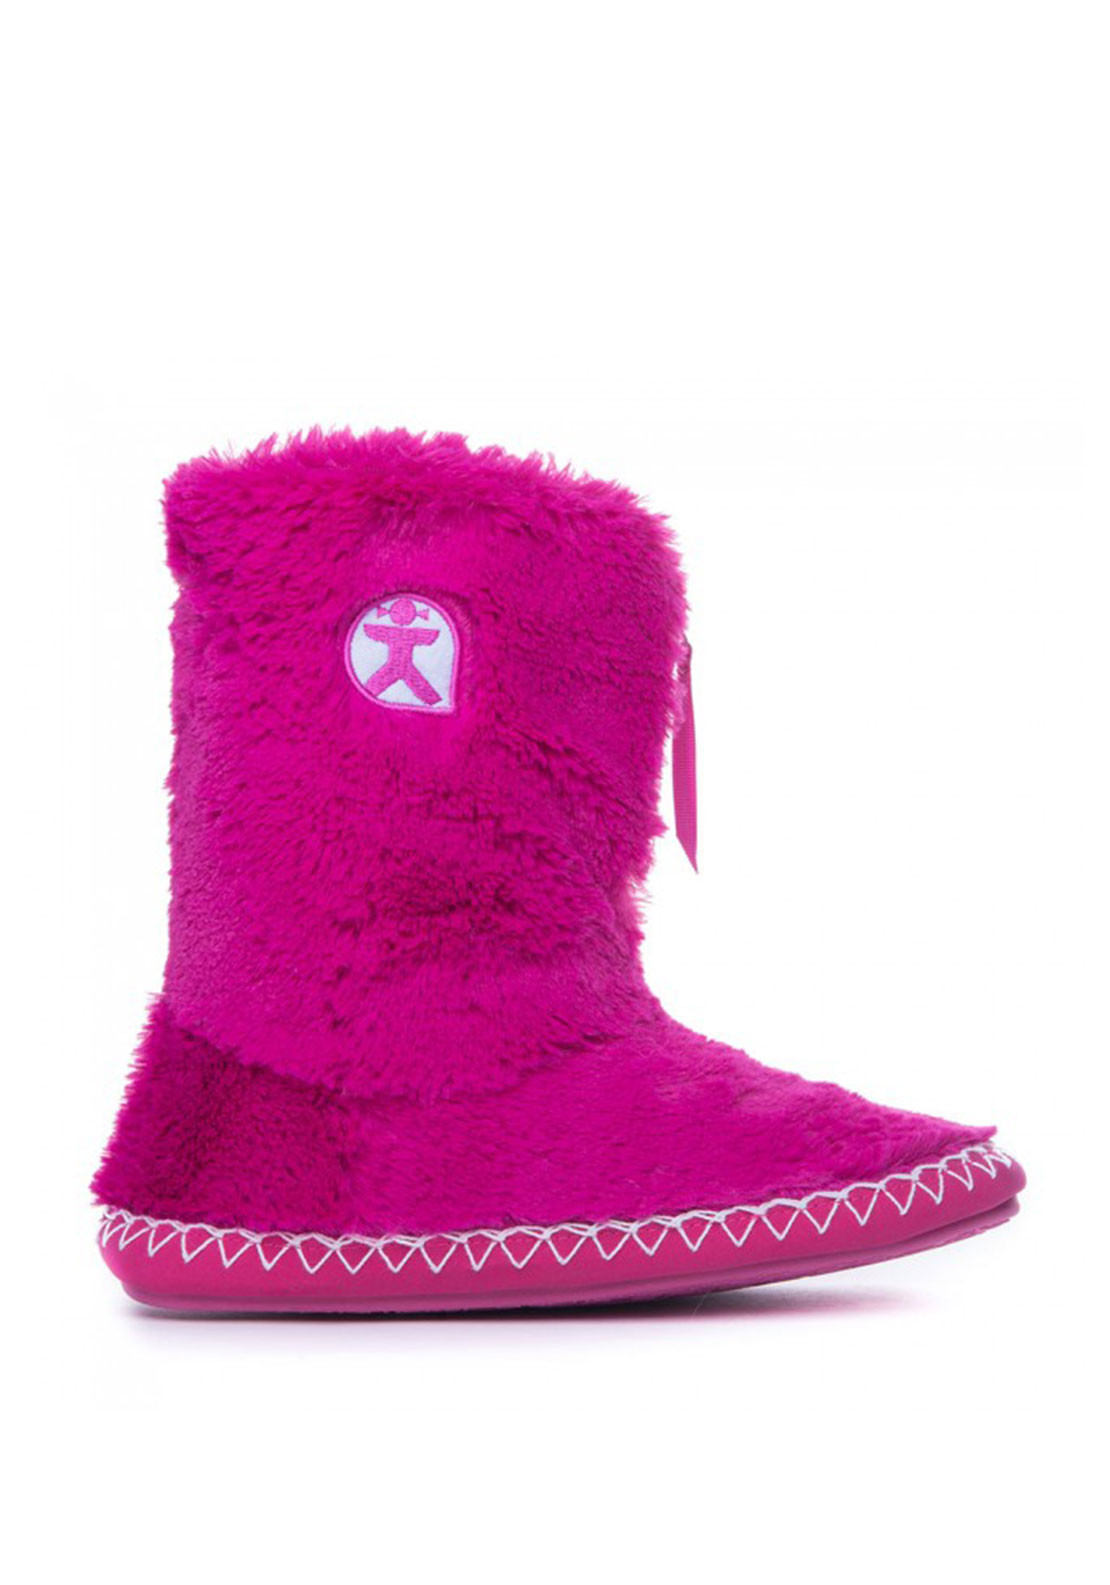 Bedroom Athletics Marilyn Slipper Boots, Hot Pink